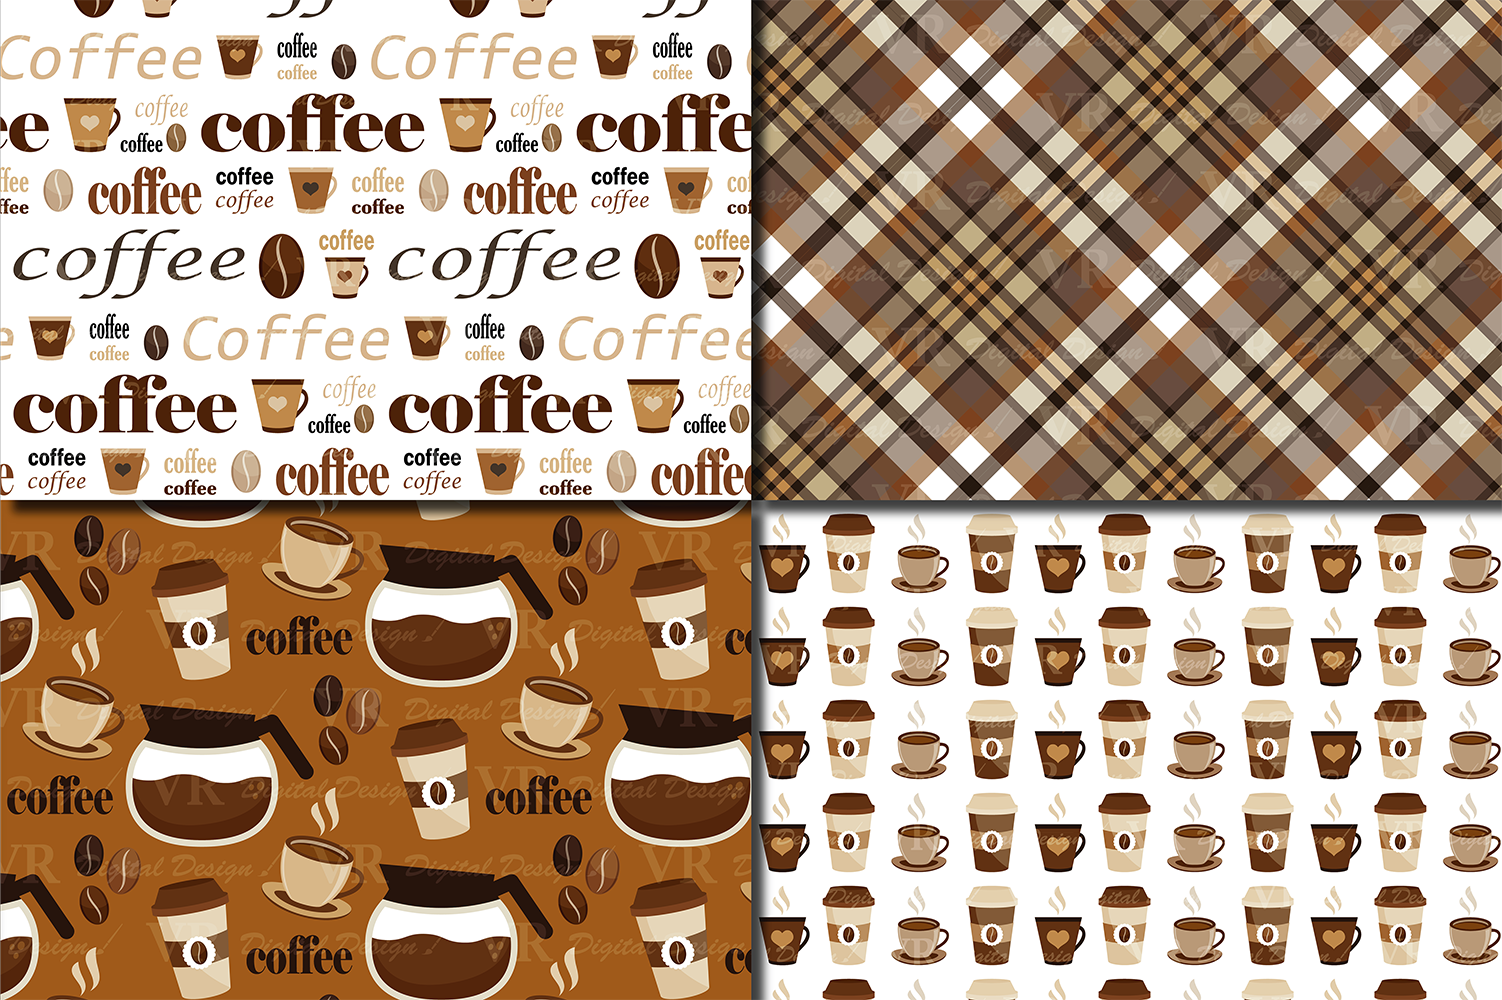 Coffee Digital paper pack / Coffee beans pattern / Coffee backgrounds / Brown Scrapbooking paper example image 2